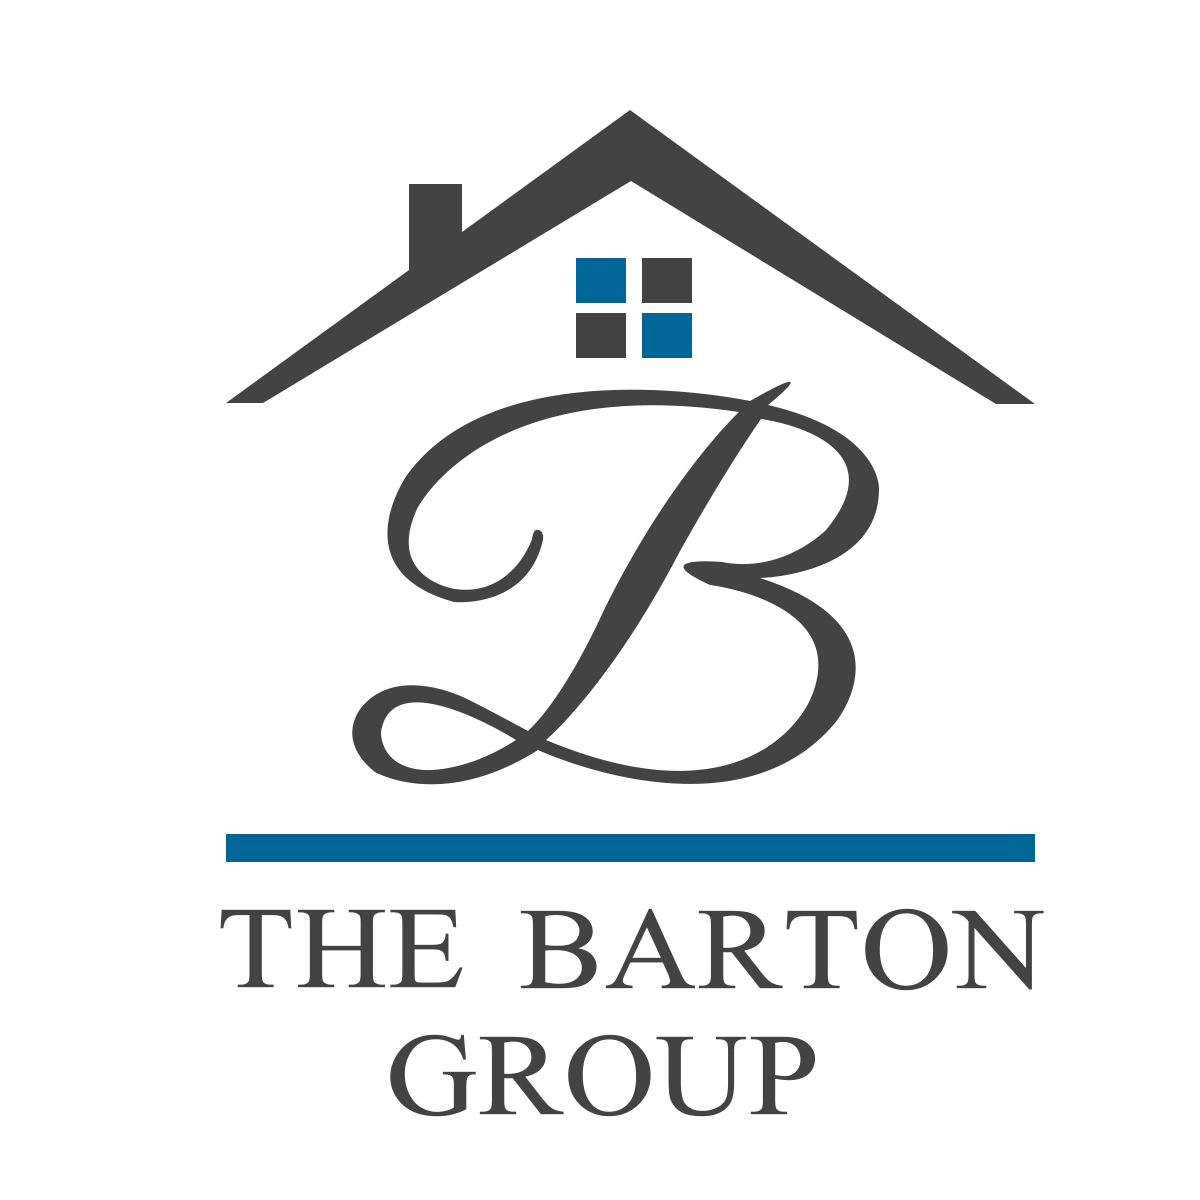 The Barton Group logo